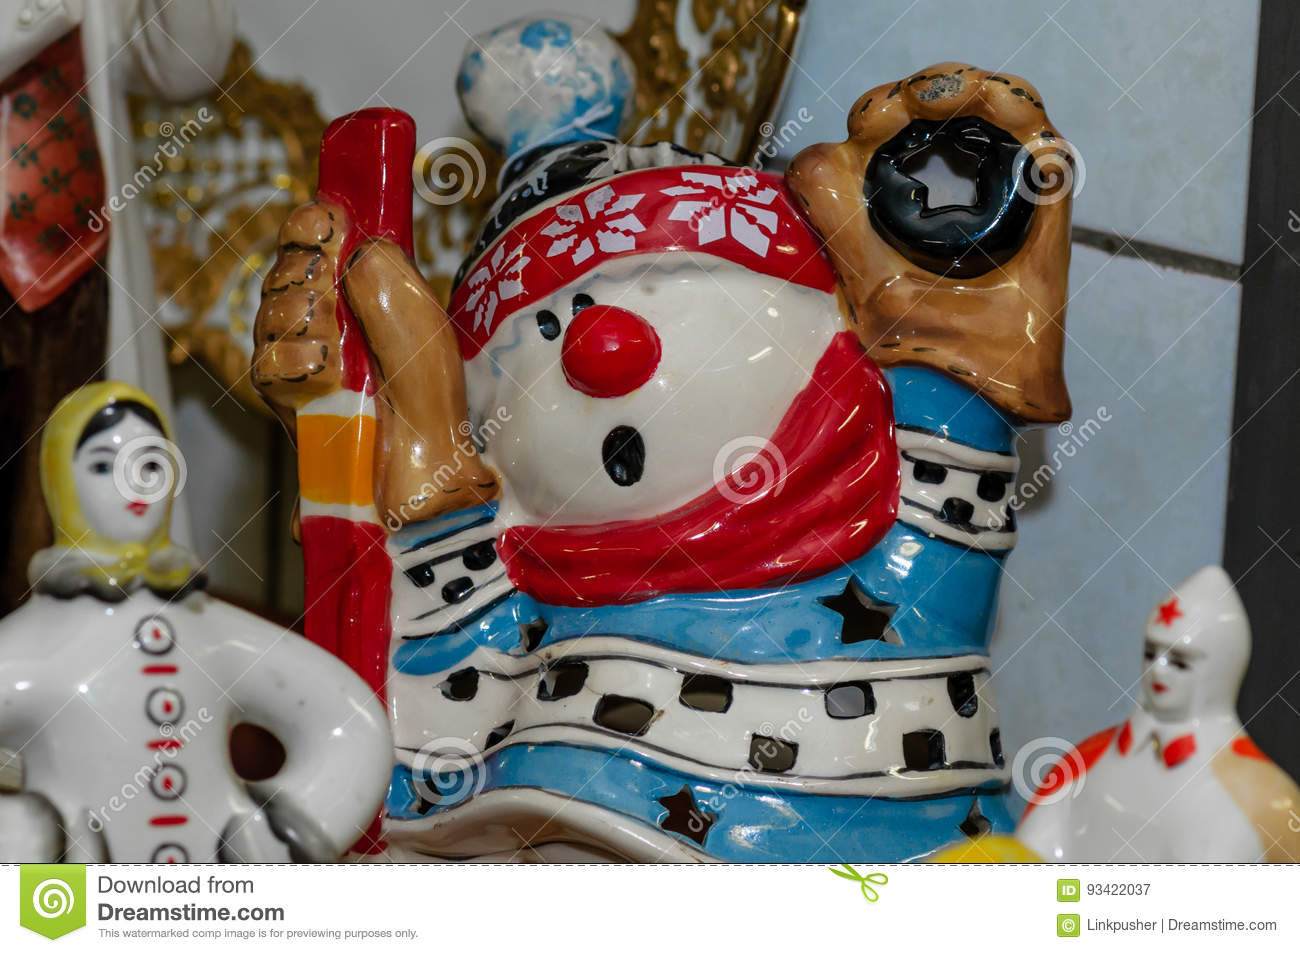 Moscow, Russia - March 19, 2017: Ceramic lamp in the form of a cartoon character, hockey player, snowman-goalkeeper